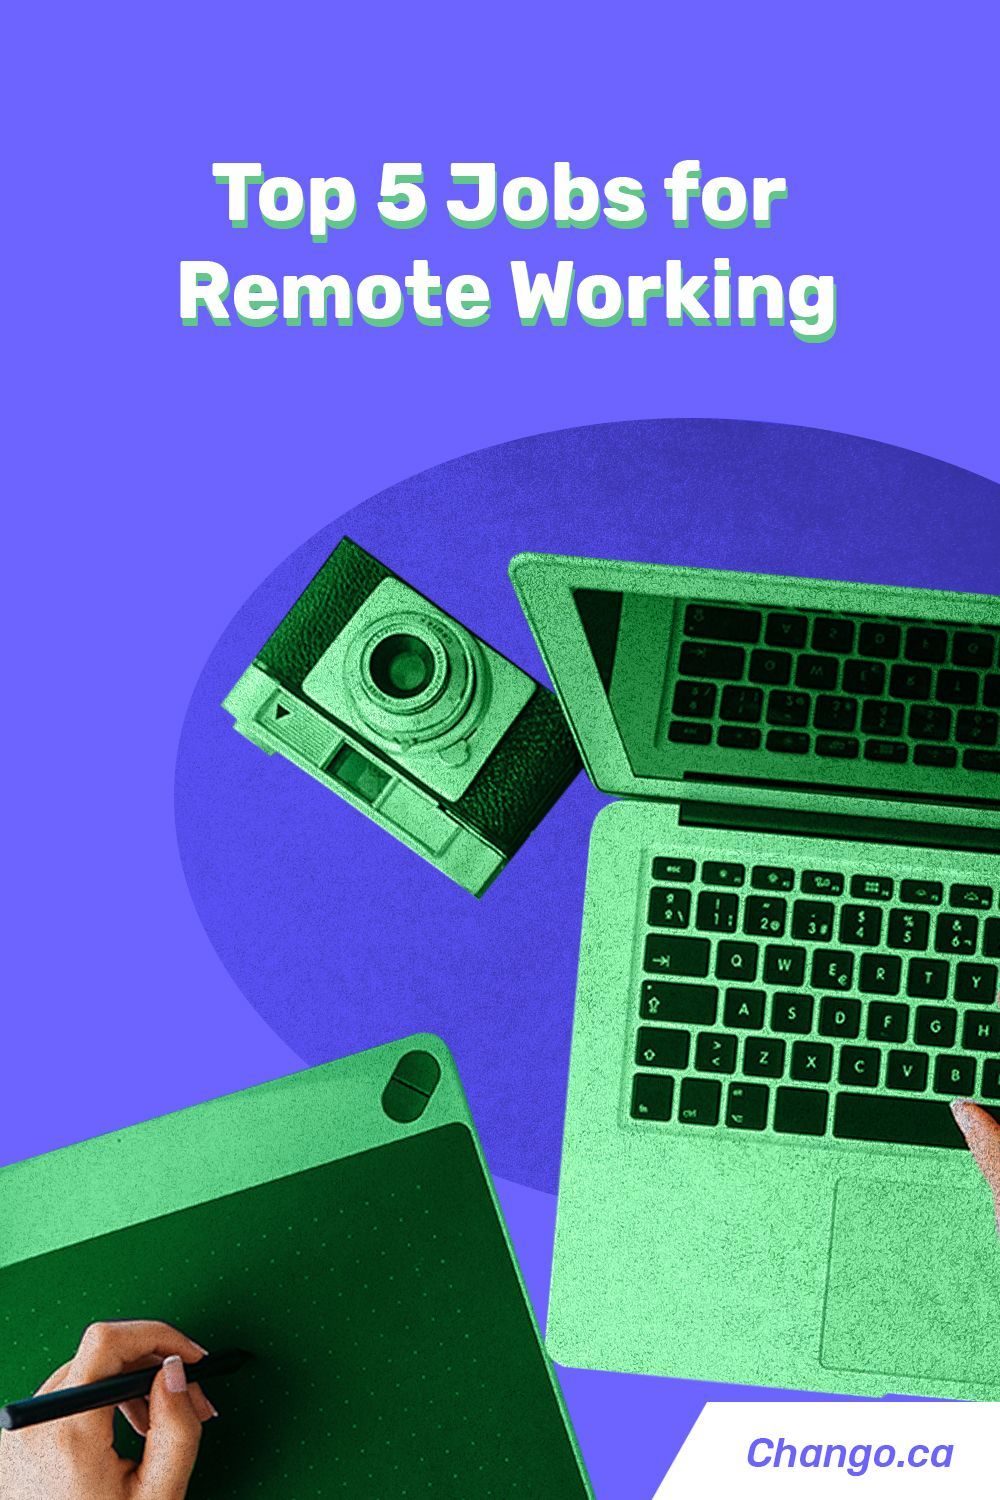 Top 5 Jobs for Remote Working in 2020 Remote work